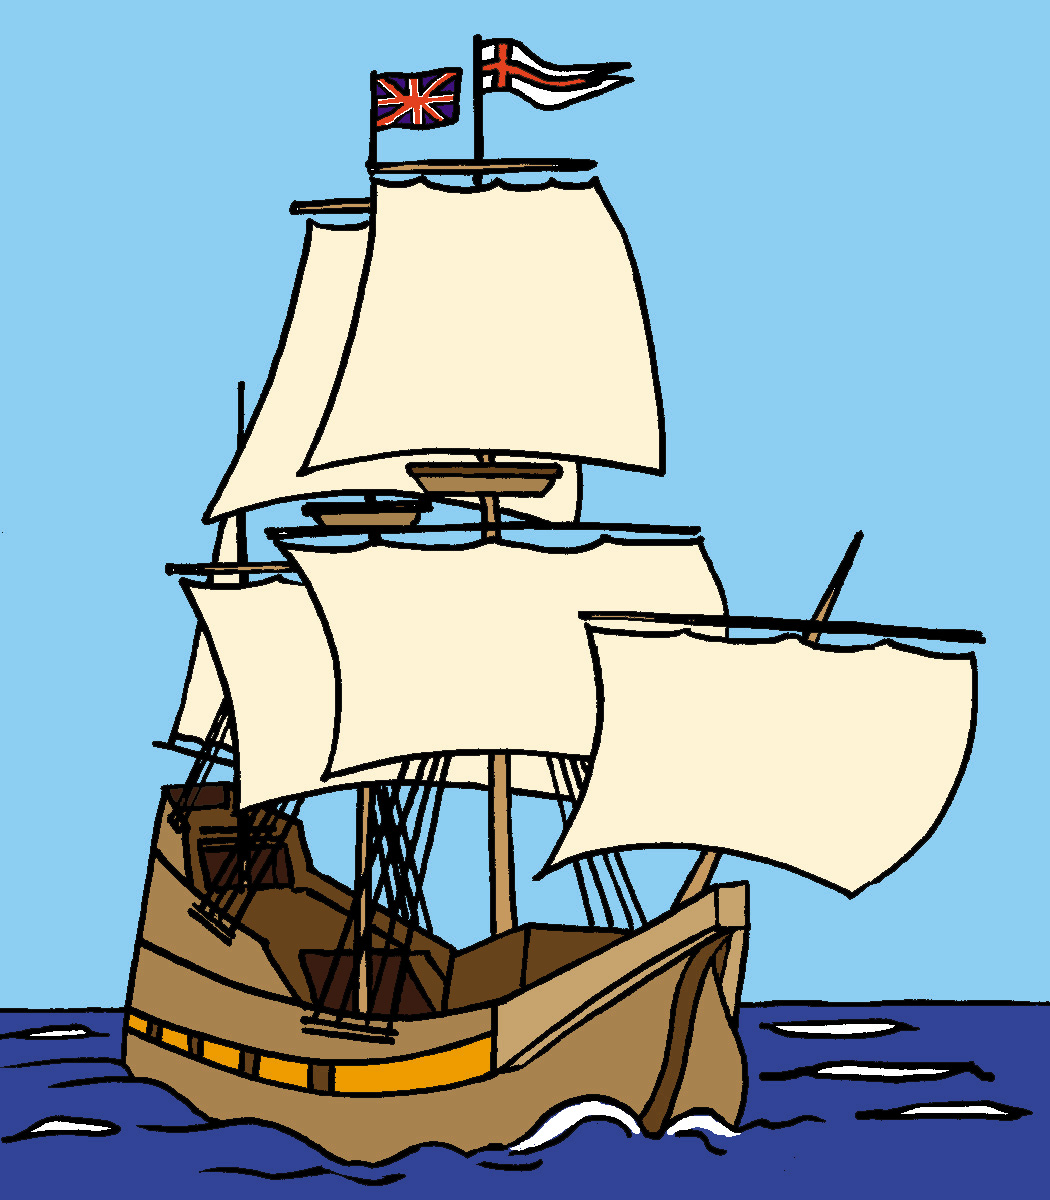 Old Sailing Ships clipart colonial Newsletters Keywords color Mayflower Mayflower